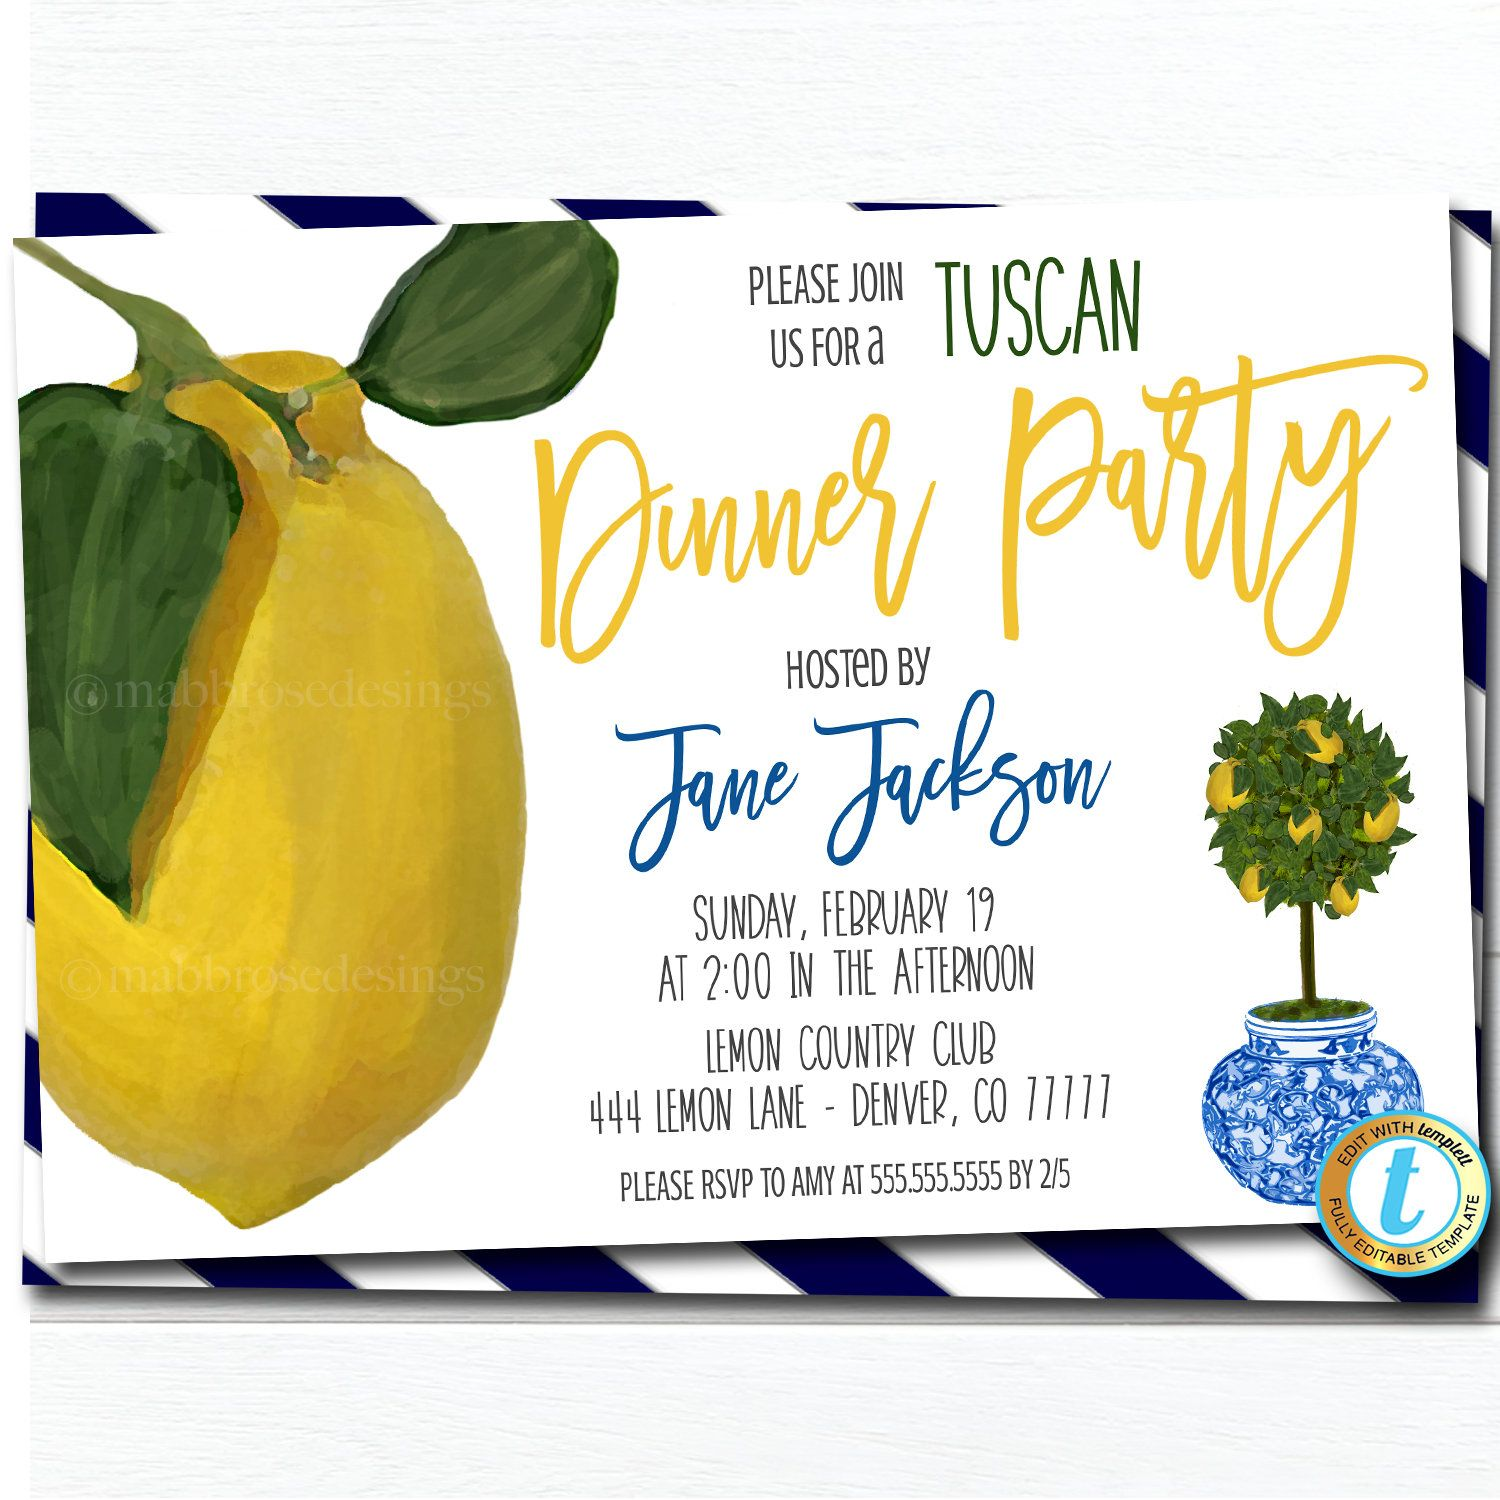 Lemon Dinner Party Invitation Mediterranean Italian Greek  Etsy